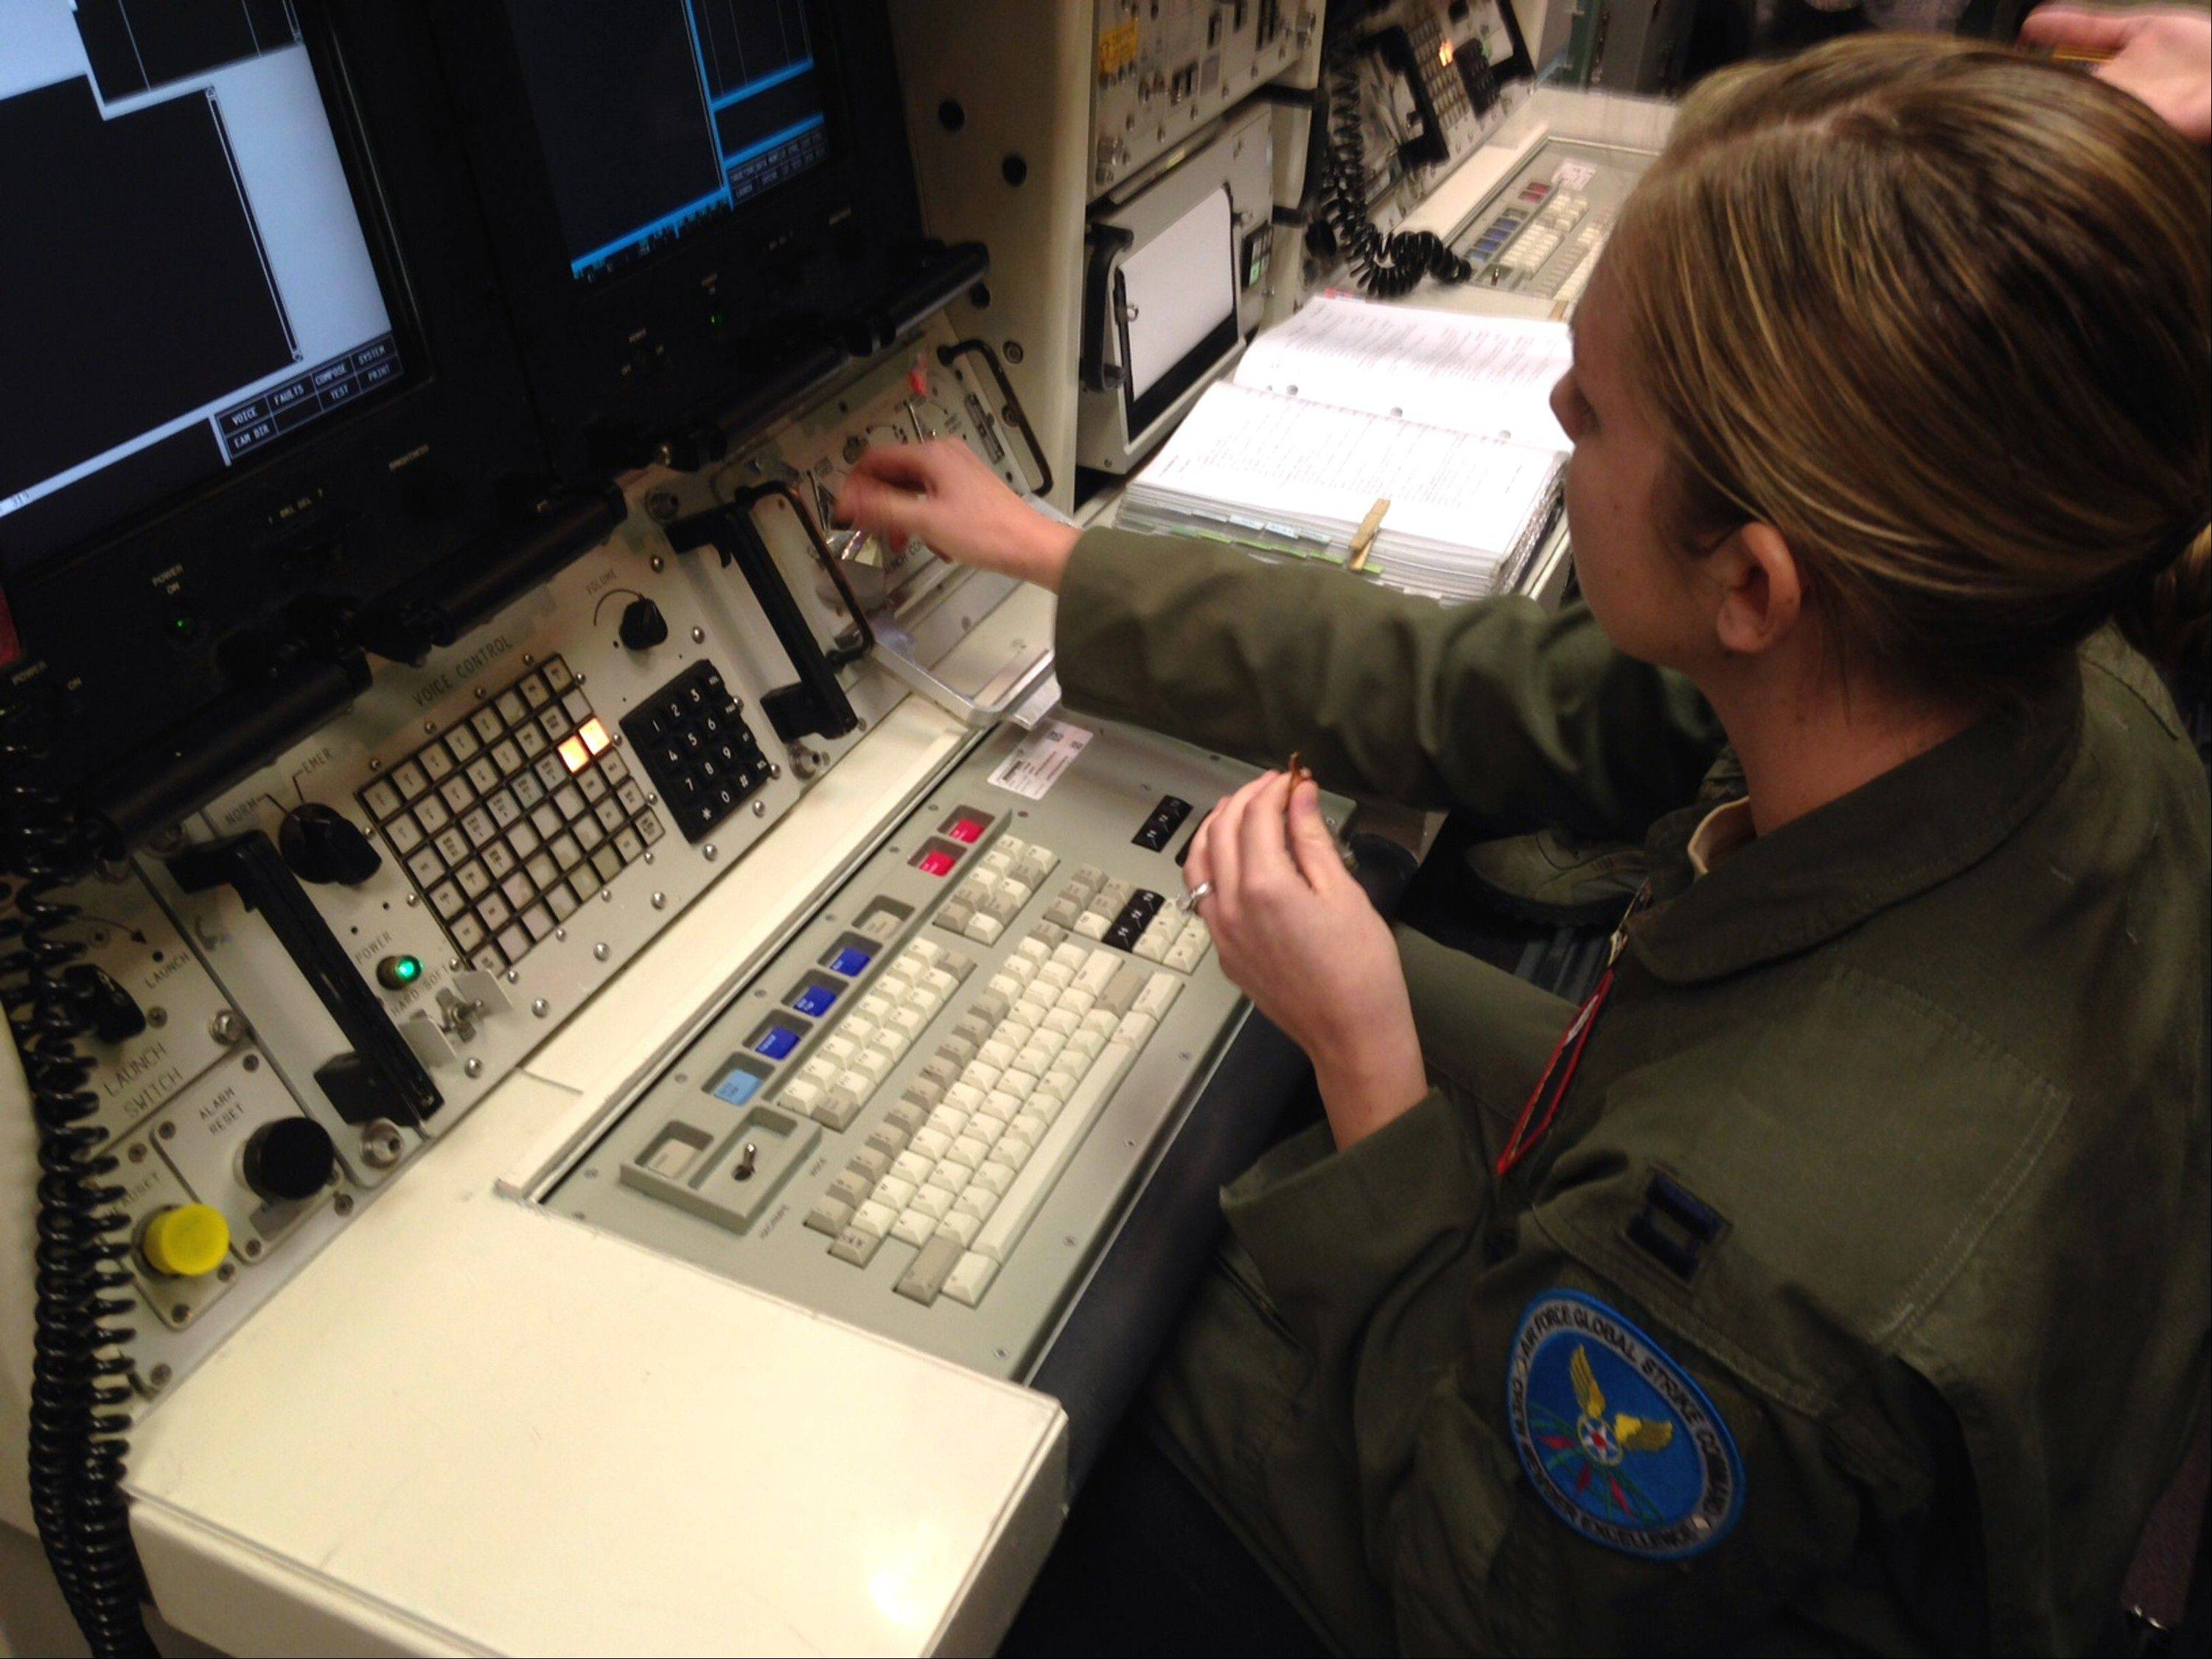 Capt. Lauren Choate, a Minuteman 3 missile launch officer, at the console of a launch simulator used for training at F. E. Warren Air Force Base, Wyo.